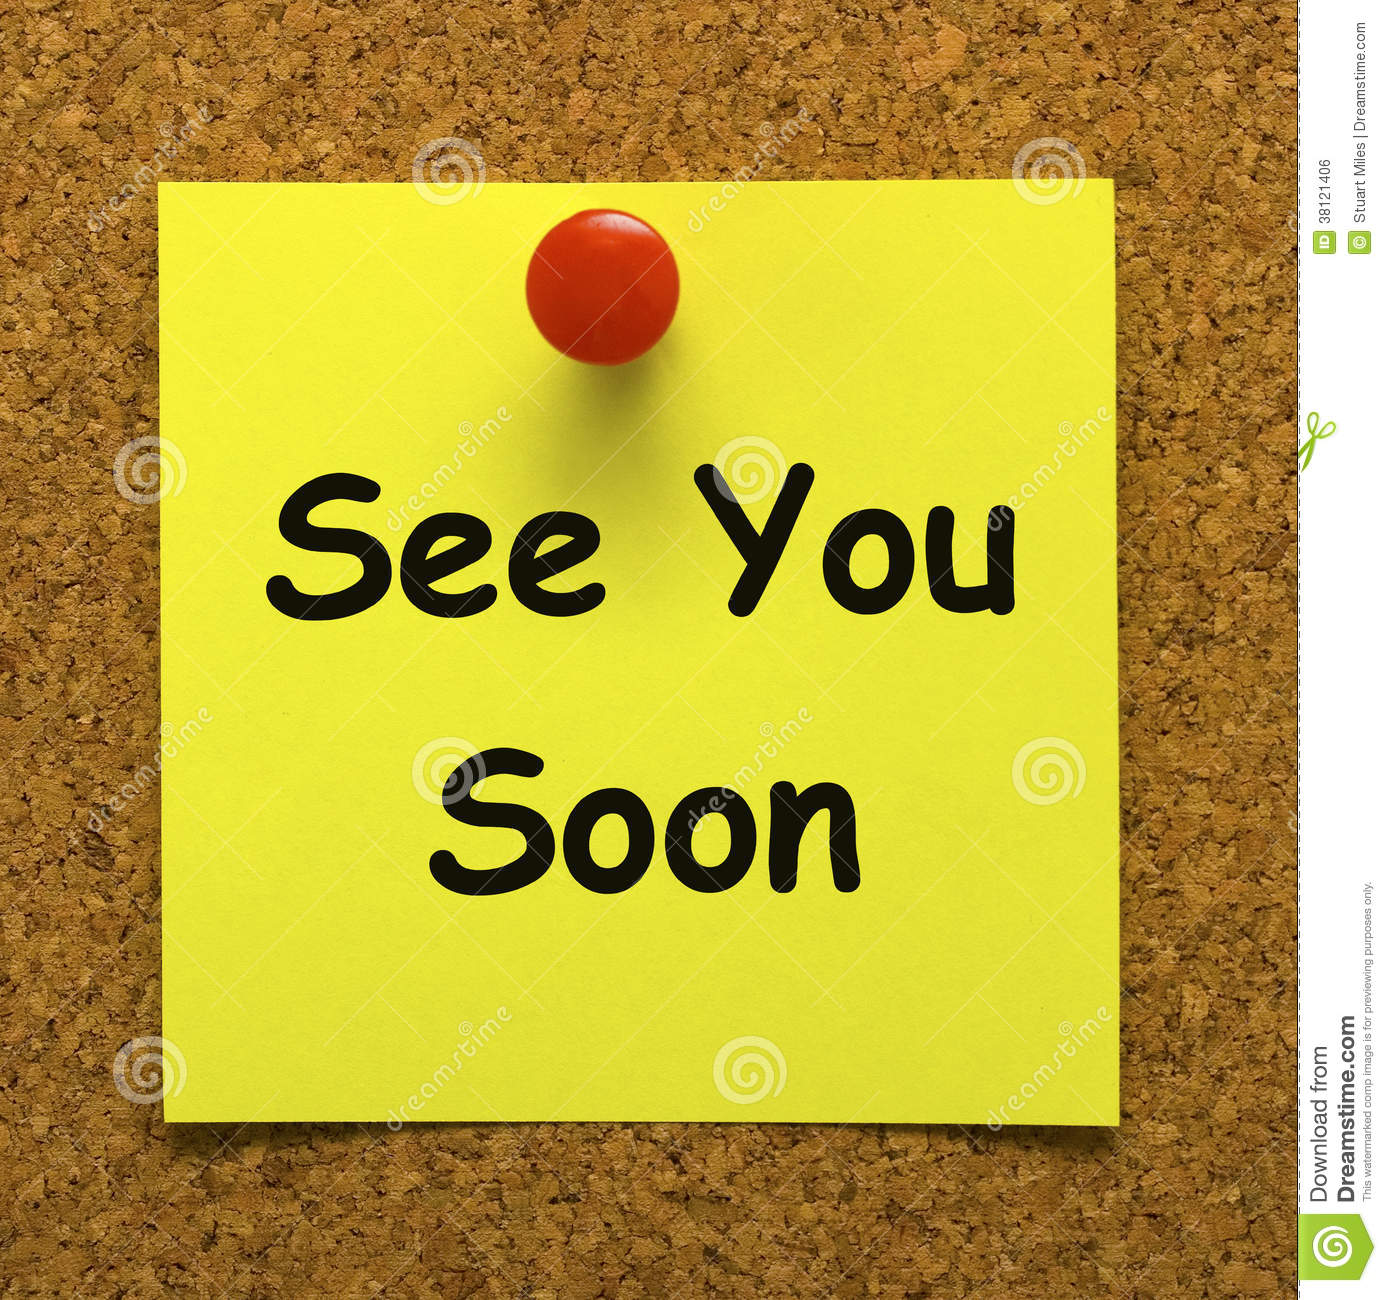 See You Soon Means Goodbye Or Farewell Stock Illustration Illustration Of Brand Square 38121406